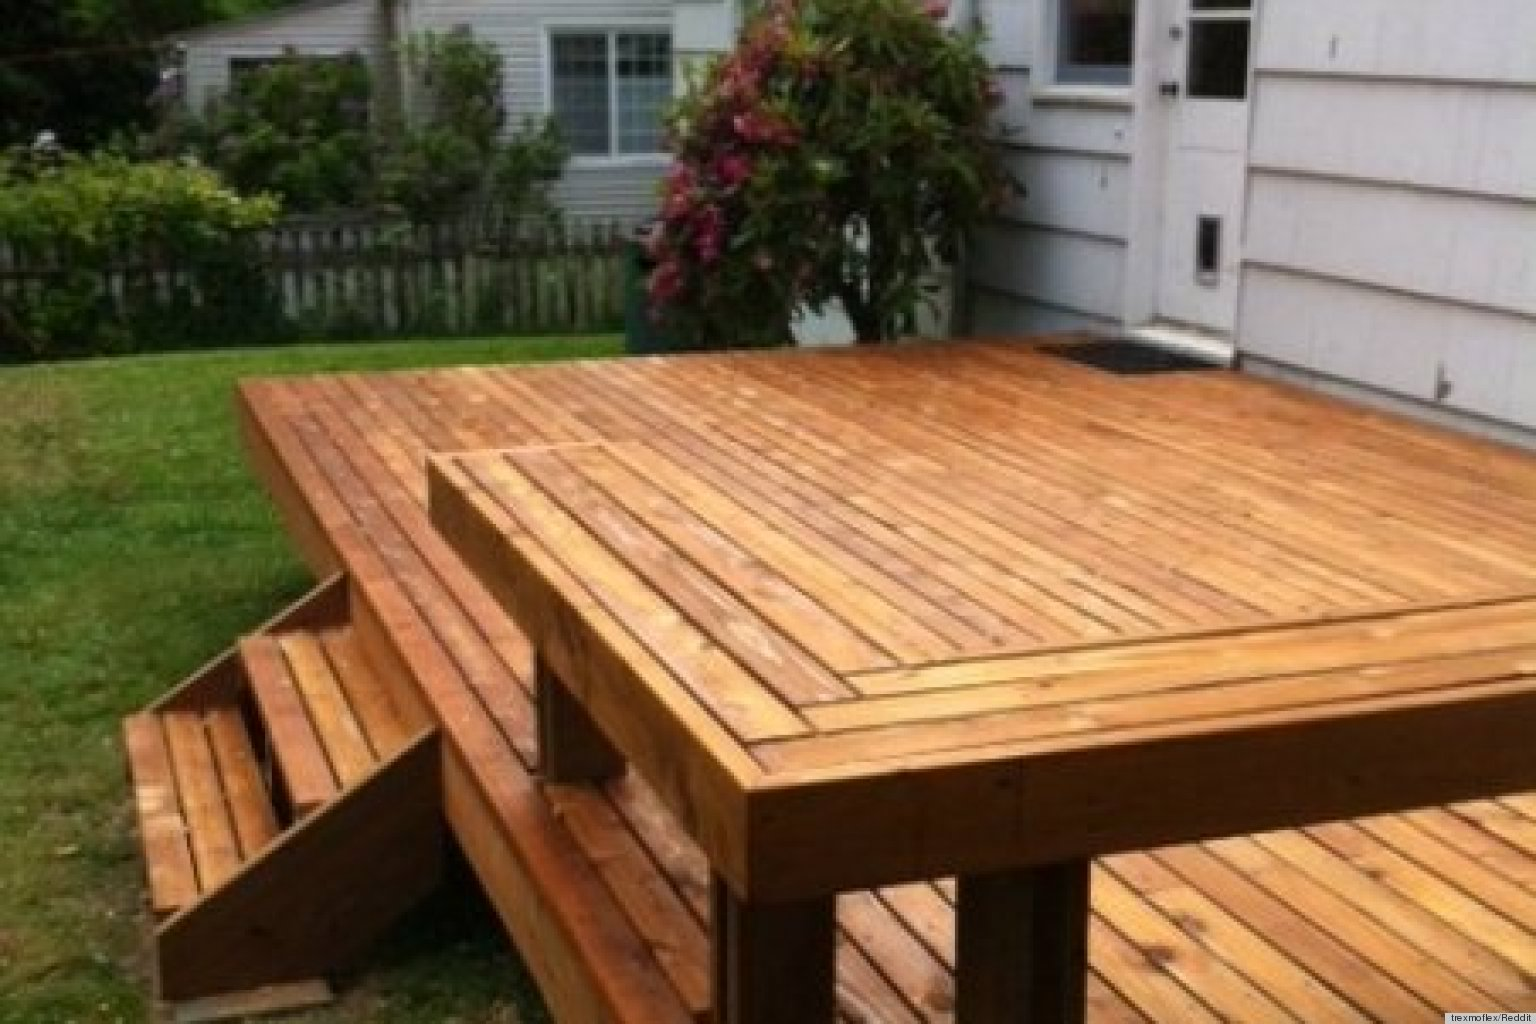 Decks light construction projects winston salem for Patio plans and designs